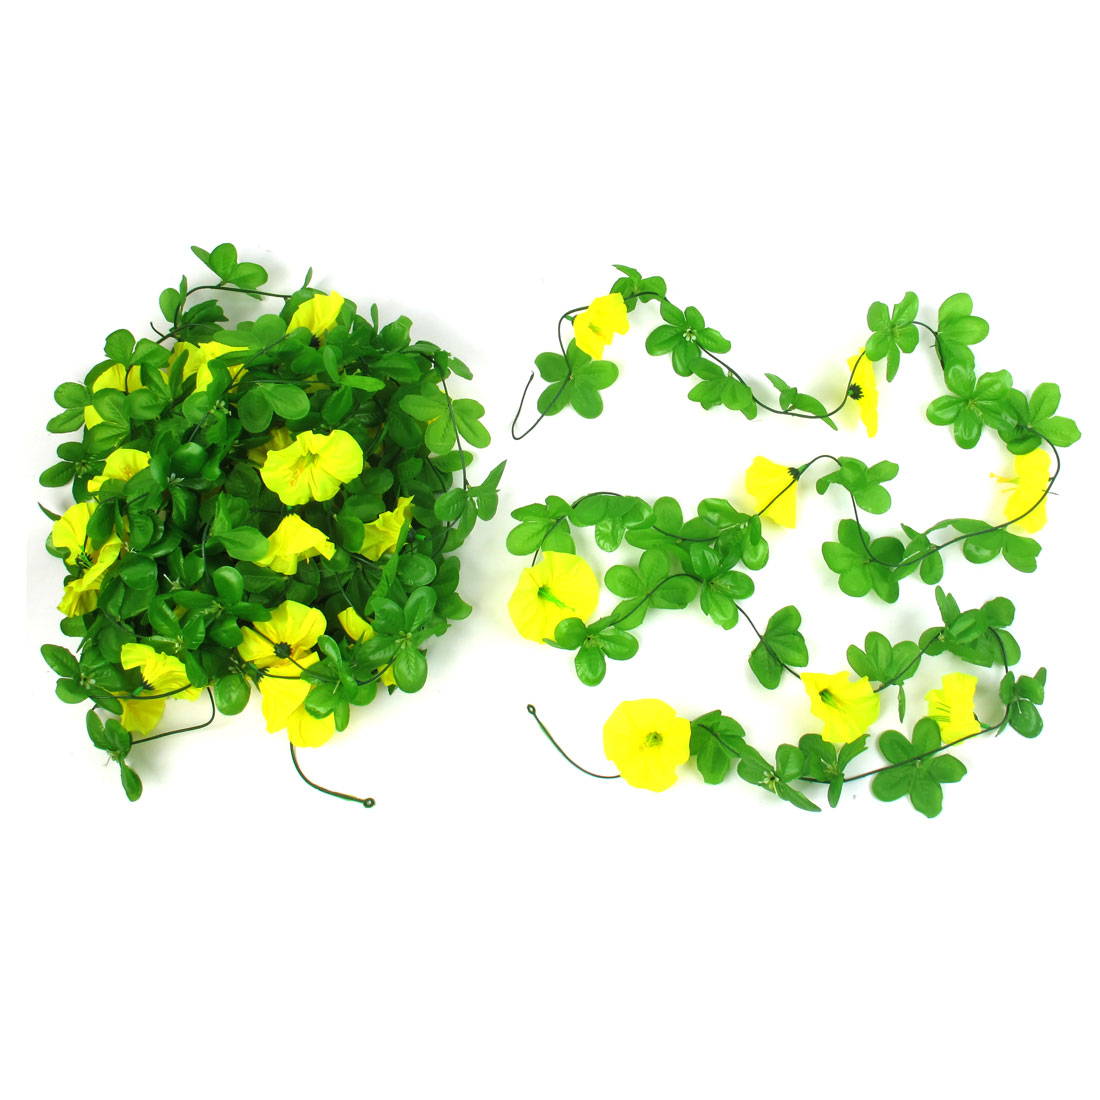 5 Pcs 2.4M Long Green Yellow Plastic Fabric Artificial Emulational Flower Hanging Vine